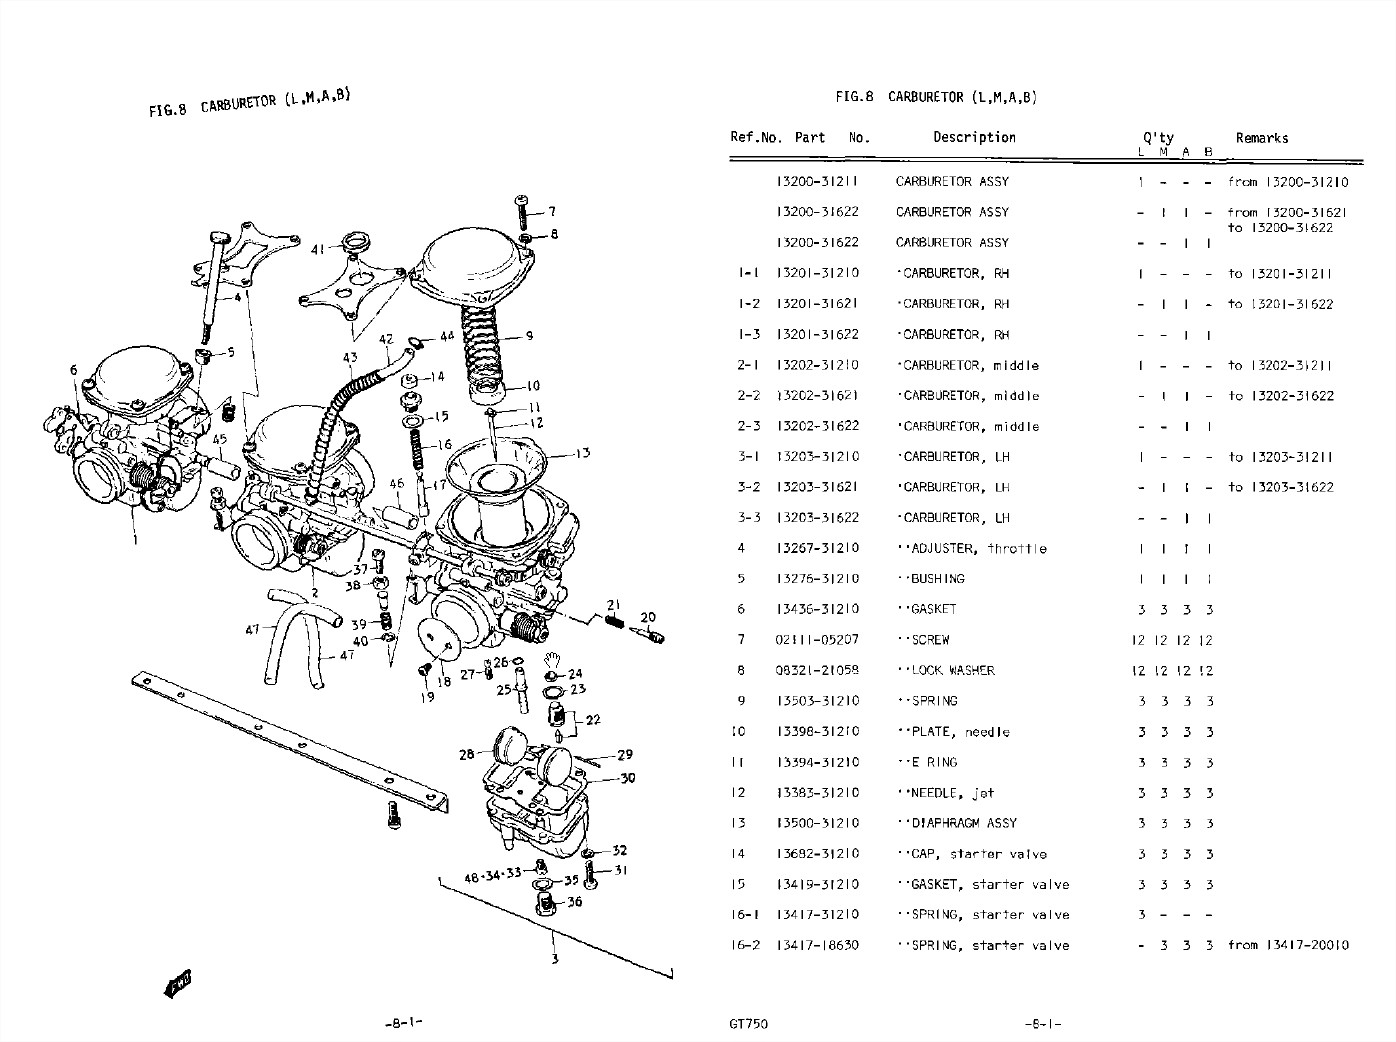 Carburetor part list